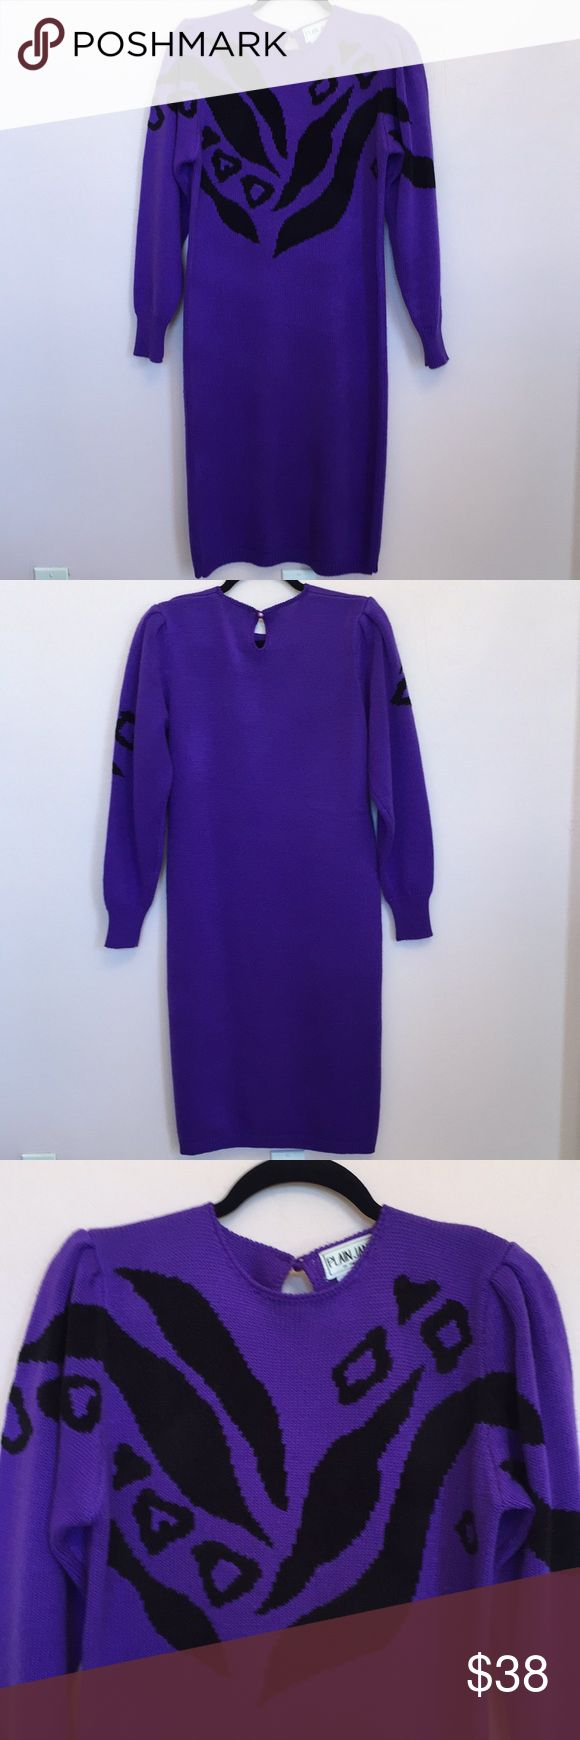 "Vintage Plain Jane Sweater Dress Fabulous vintage Plain Jane Sweater Dress with animal print!! In purple and black 💯 acrylic knit made in Hong Kong, measures 41.5"" long, excellent vintage condition Vintage Dresses"